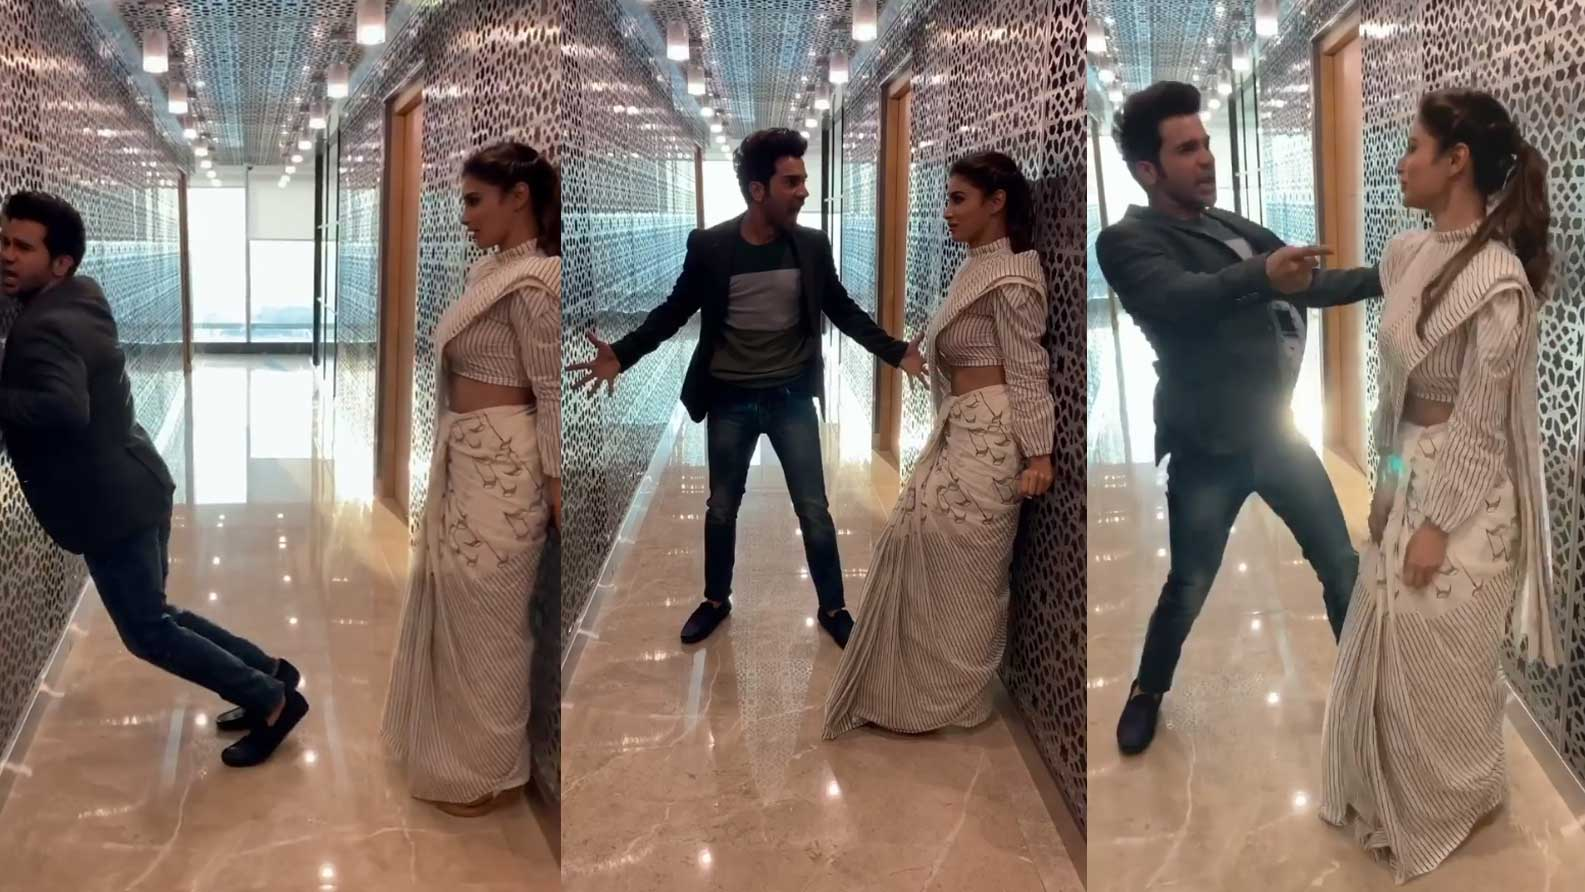 Rajkummar Rao's viral dance video with Mouni Roy is beyond hilarious, fan calls him 'new King of Bollywood' after Shah Rukh Khan